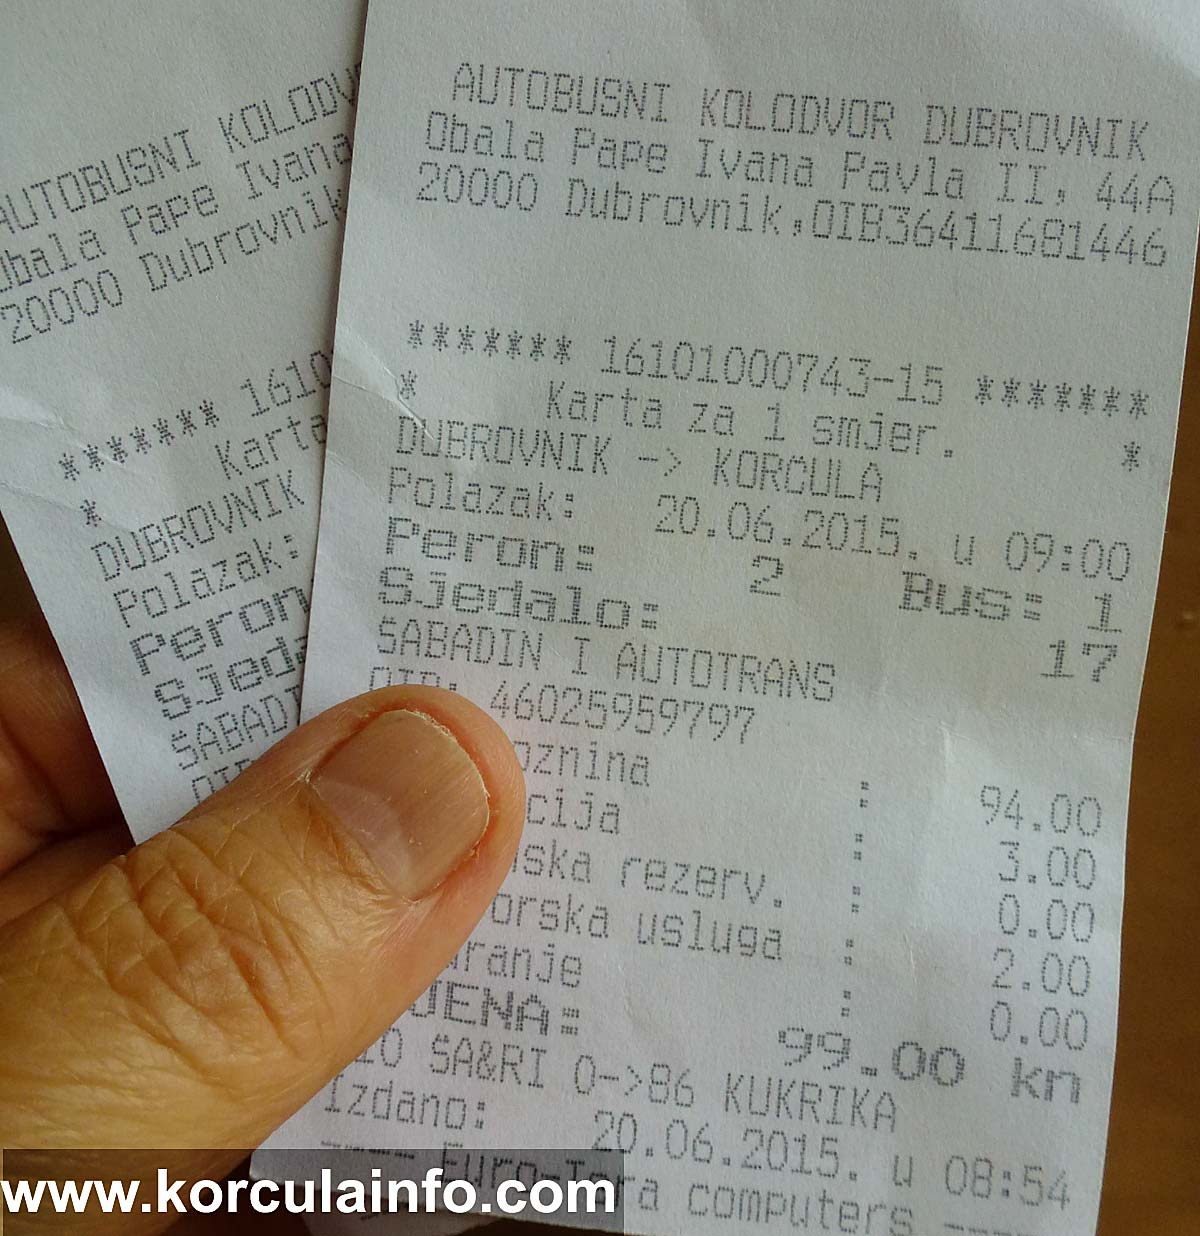 Bus tickets from Dubrovnik to Korcula 20.06.2015 - 99 Kuna each, one way